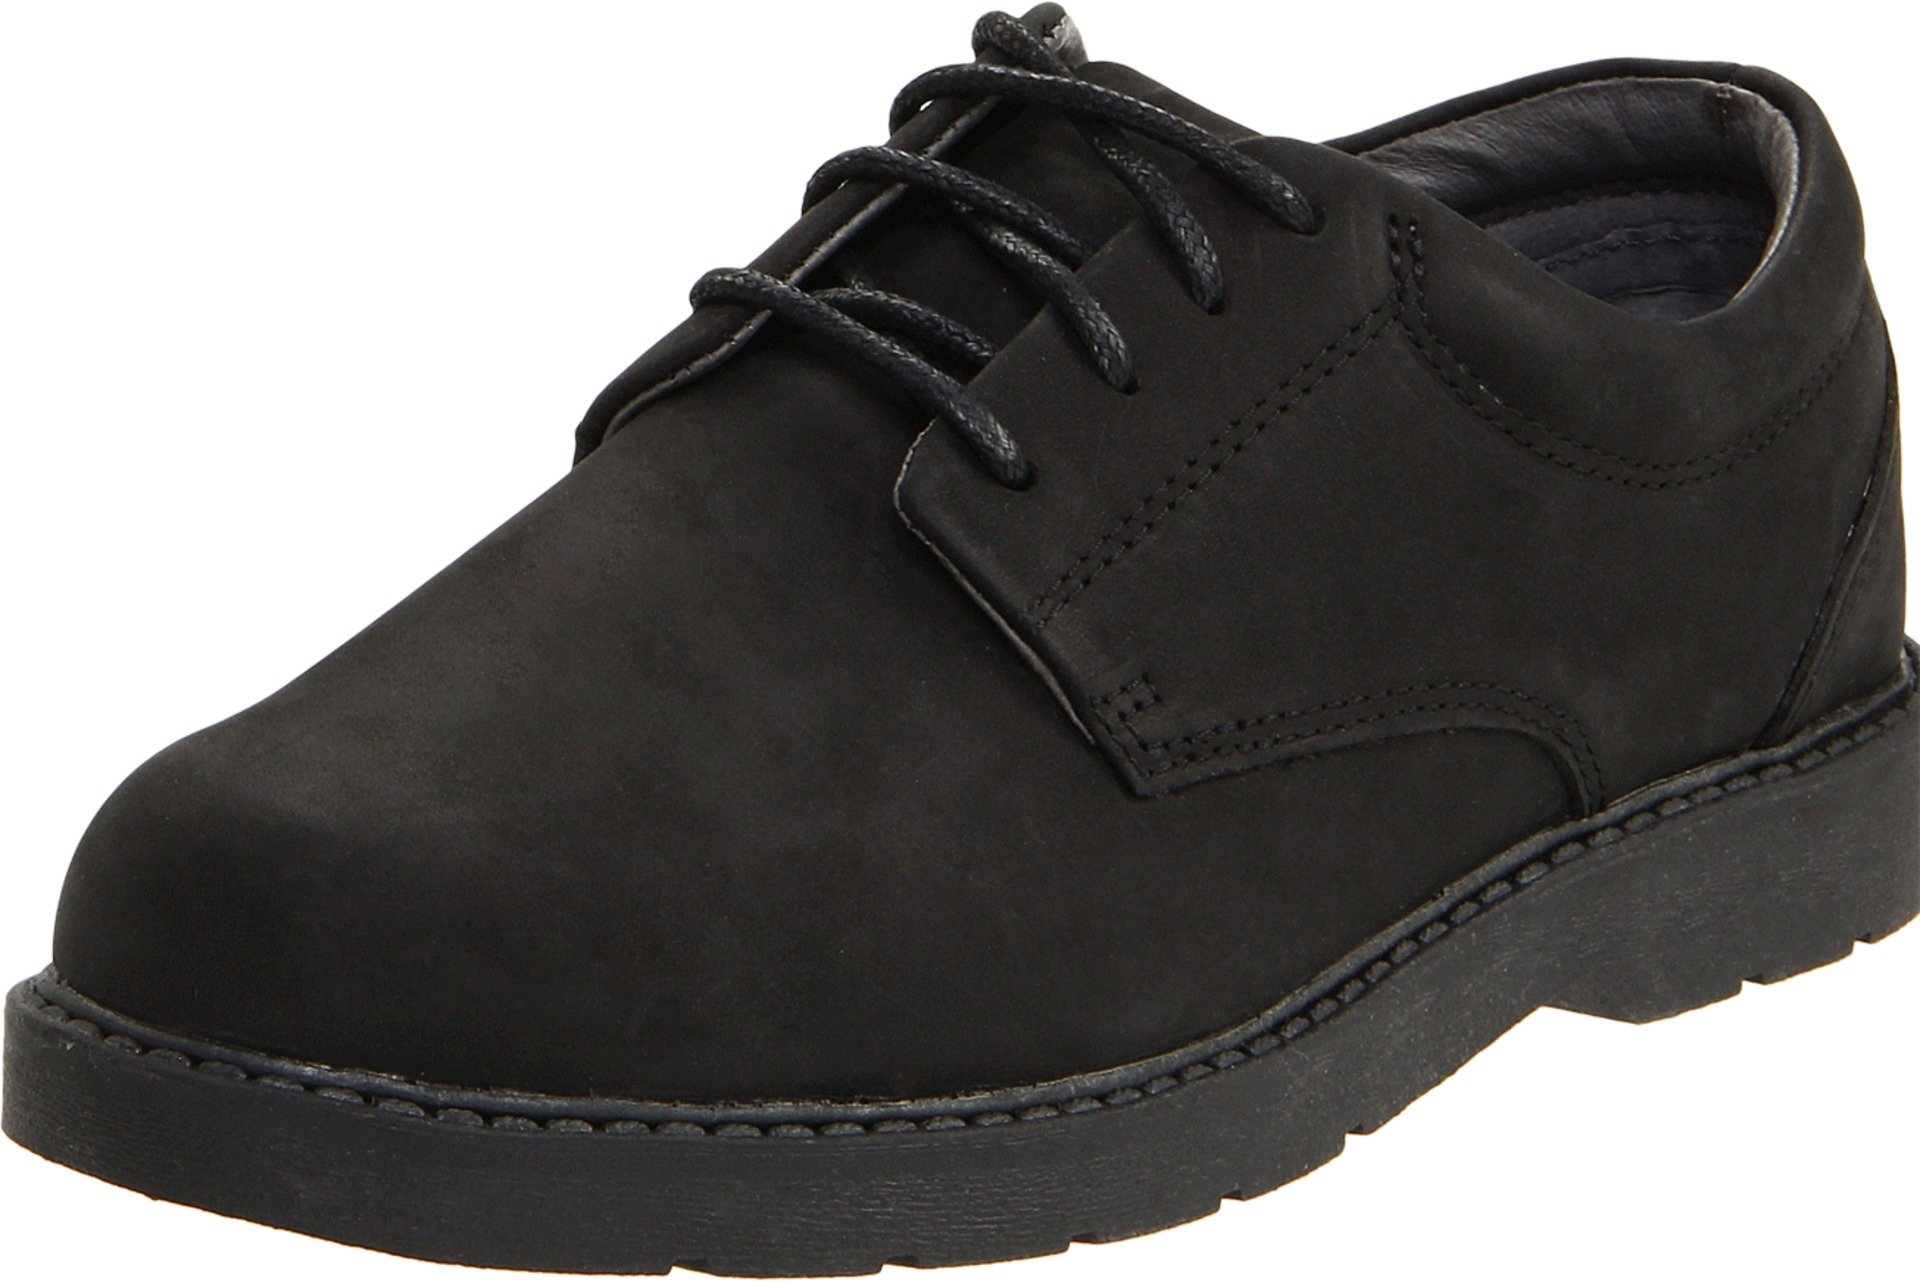 School Issue Scholar 5200 Uniform Shoe (Toddler/Little Kid/Big Kid),Black,10.5 W US Little Kid